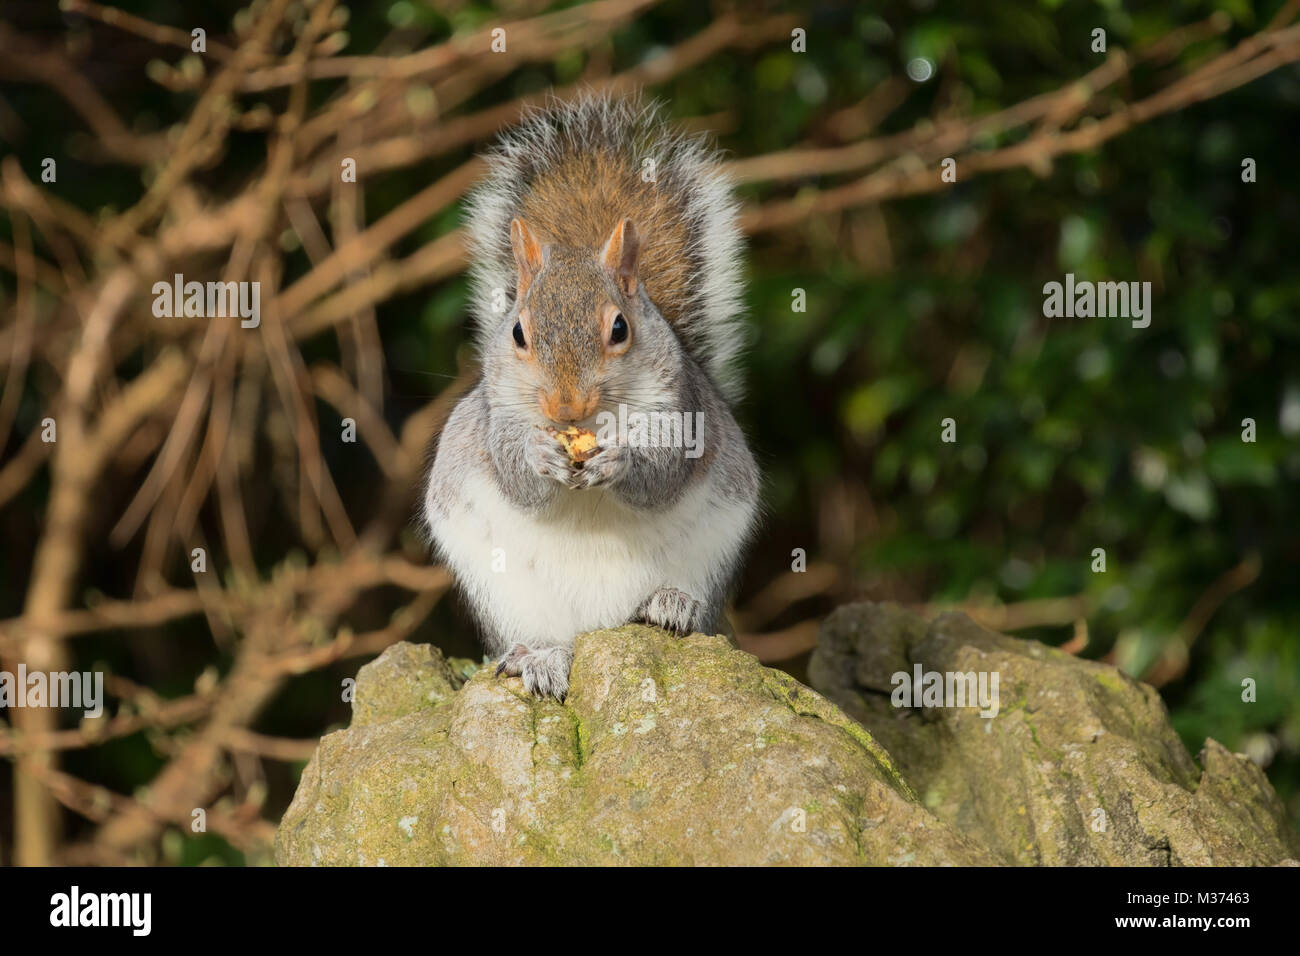 Grey Squirrel snacking on nuts at The Valley Gardens,Harrogate,North Yorkshire,England,UK. - Stock Image